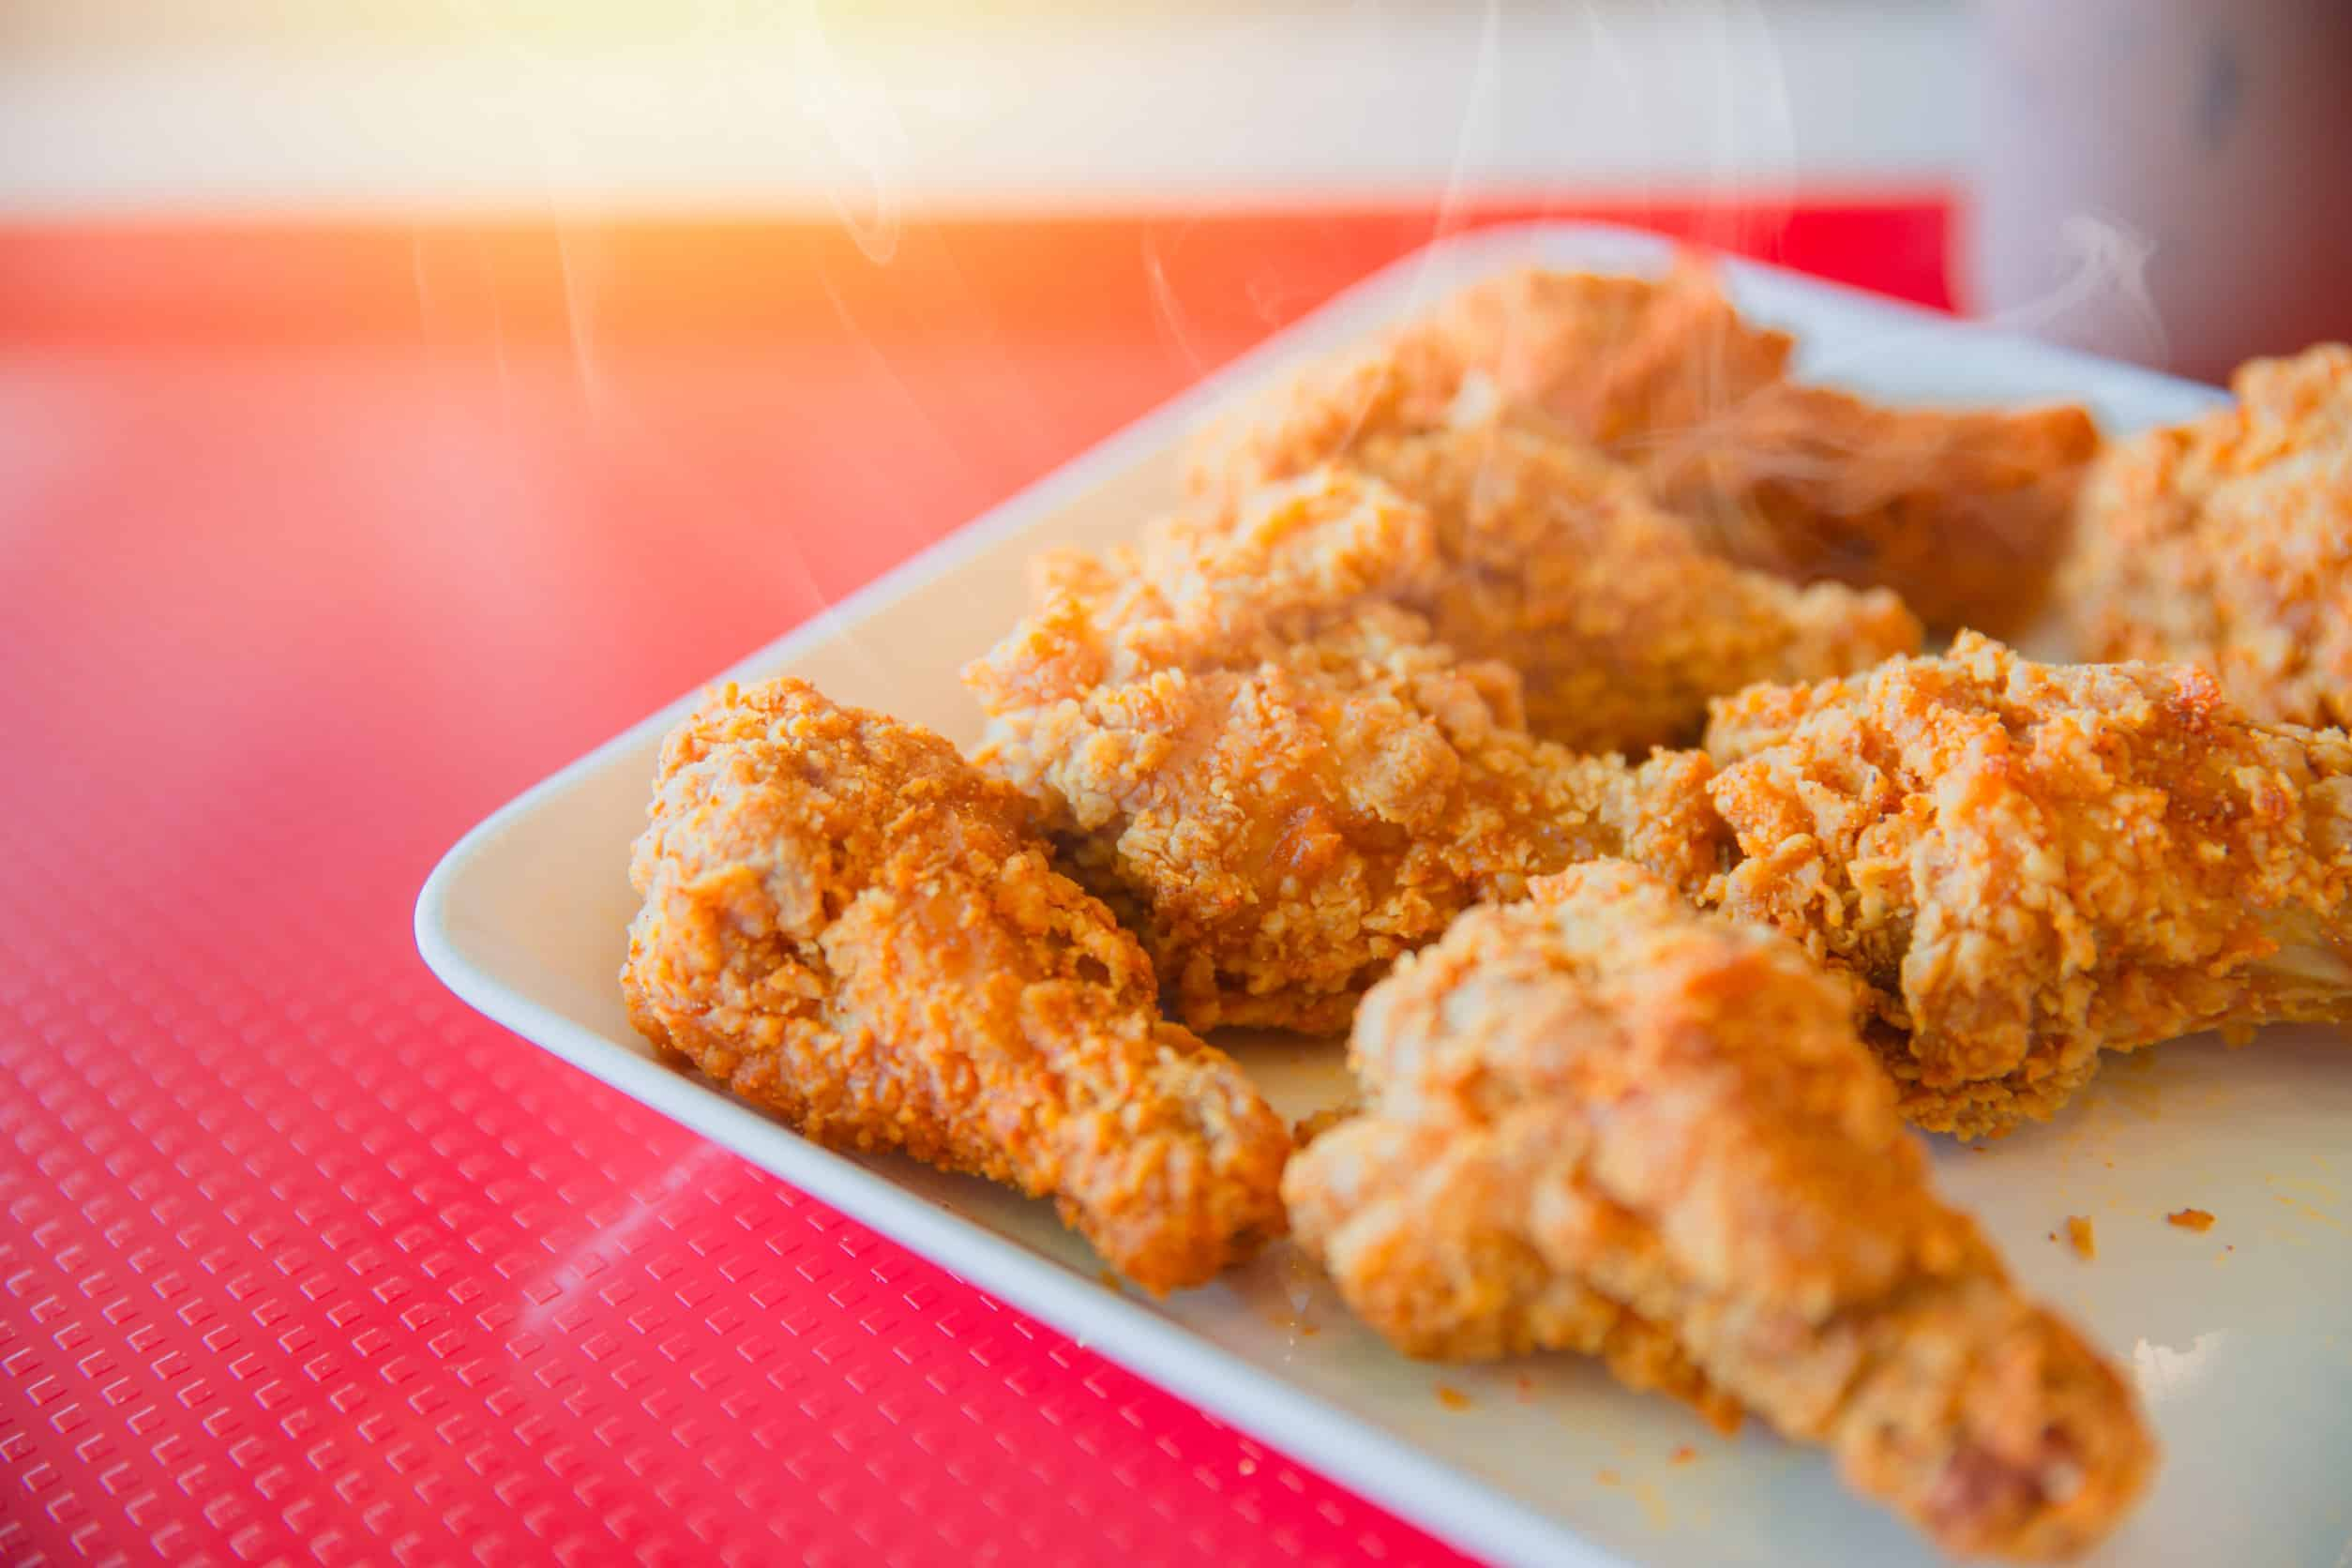 how to reheat fried chicken in an air fryer?